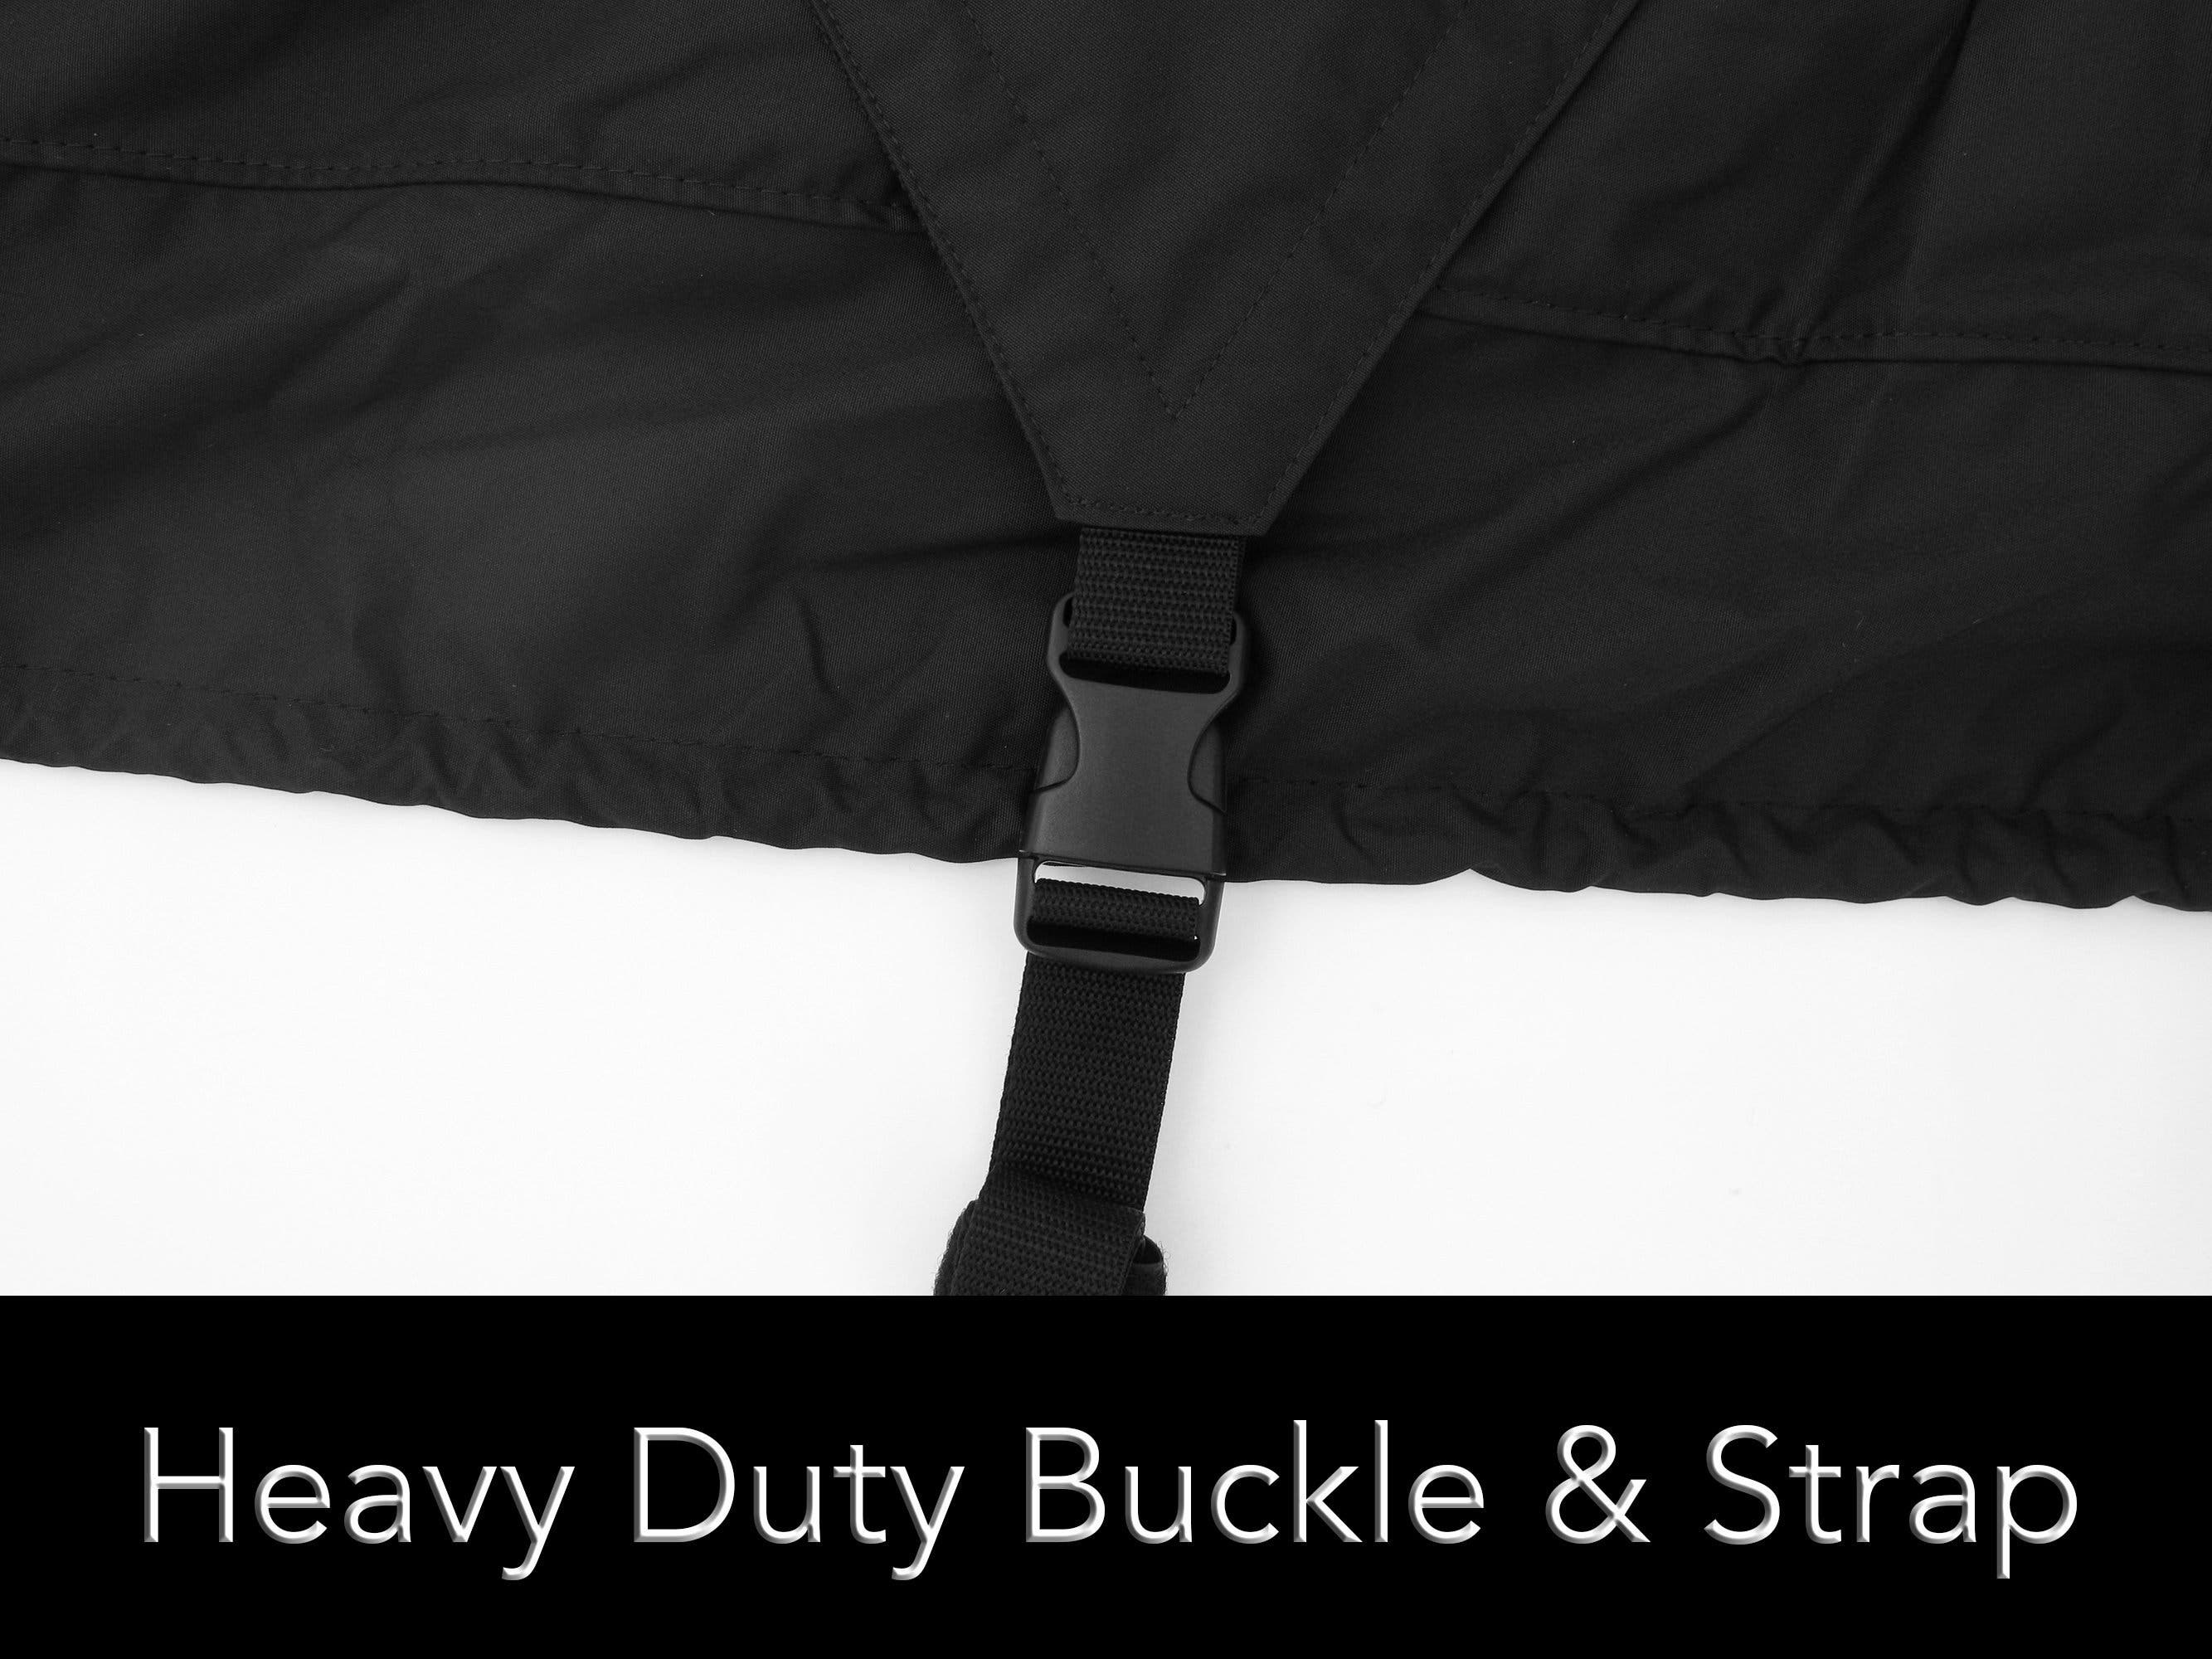 Heavy duty buckle straps